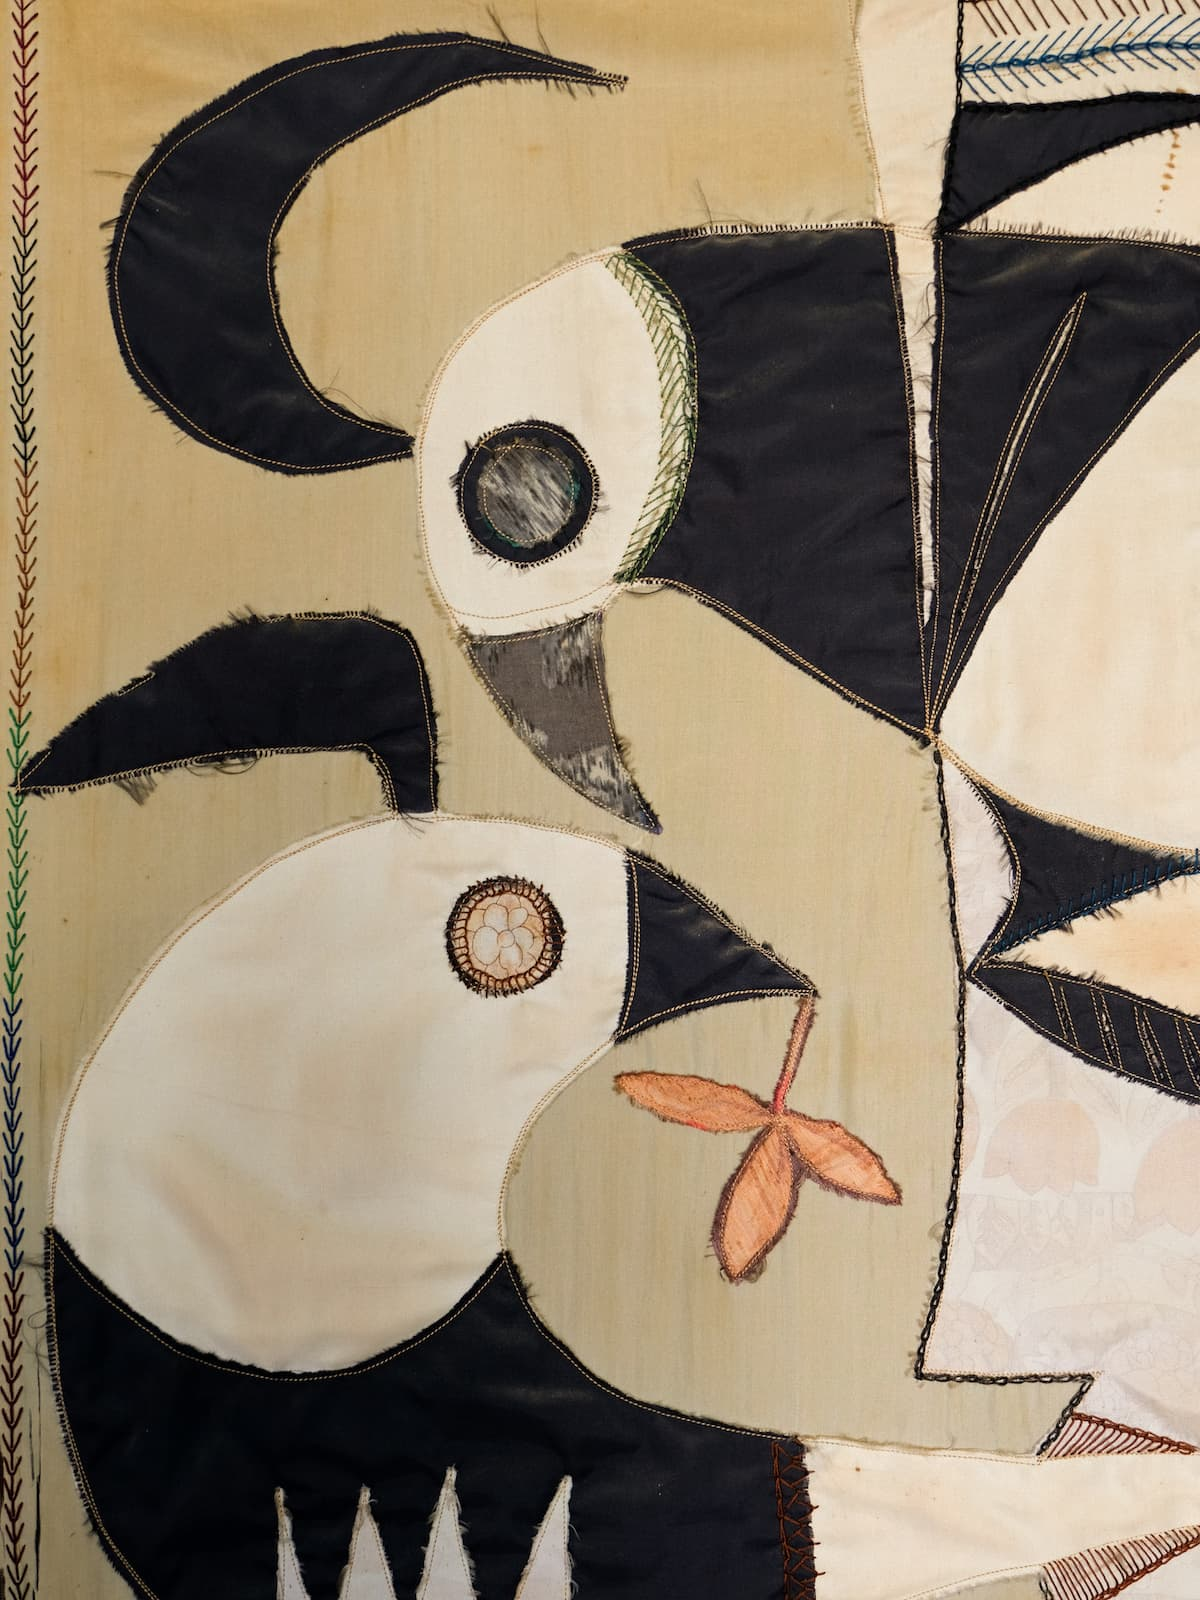 Silk tapestry in applied pieces, 60's